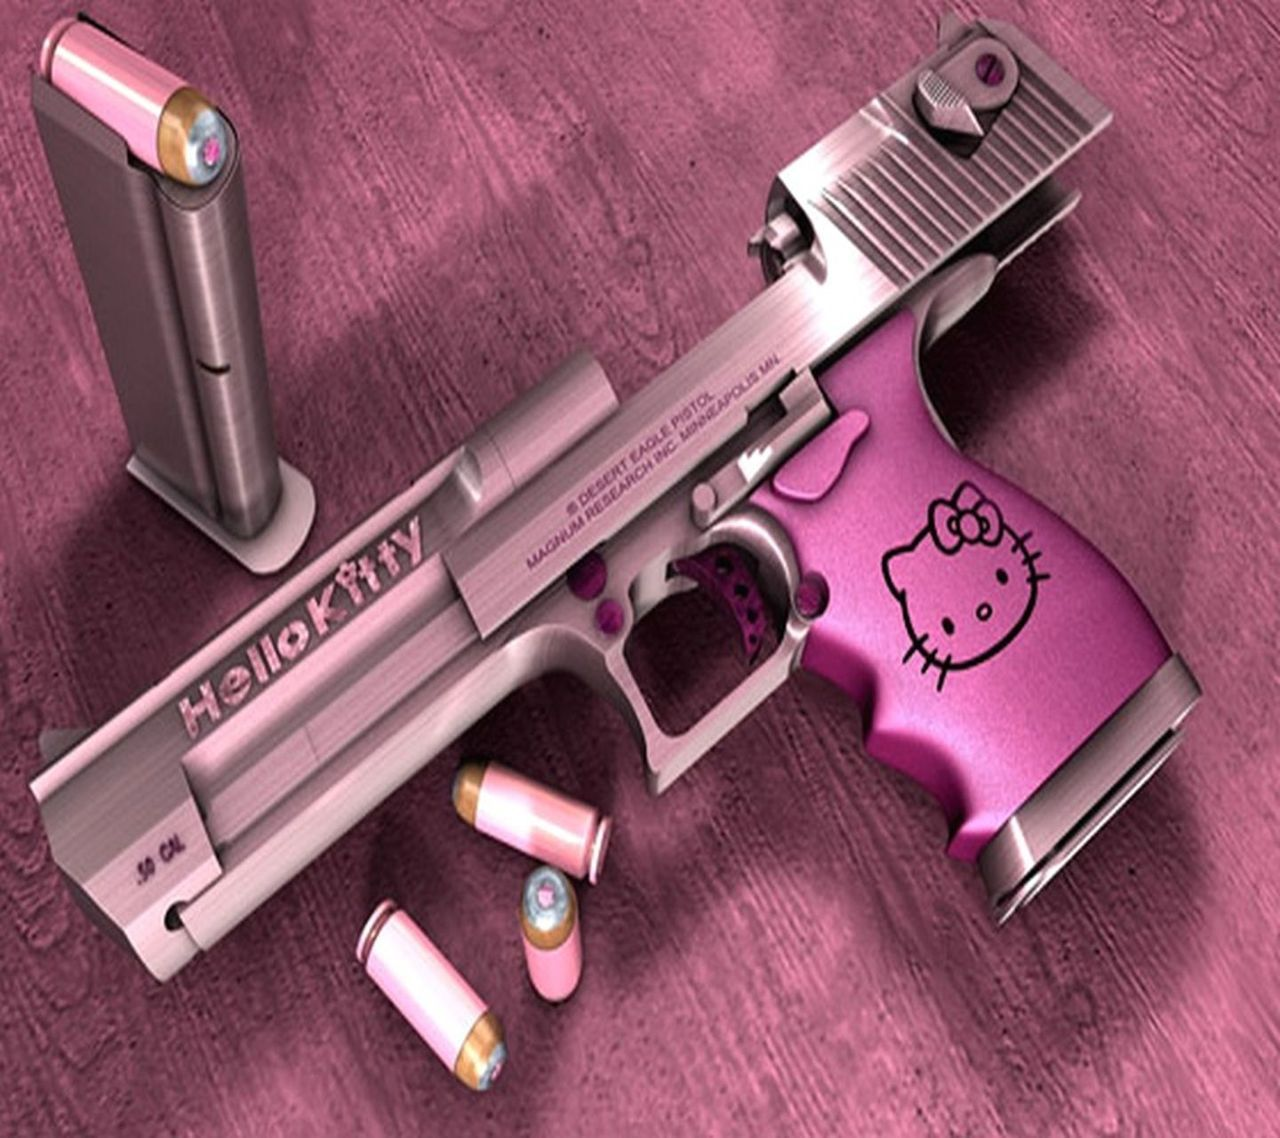 SIG Sauer Mosquito Pink — Pistol Specs, Info, Photos, CCW and ...